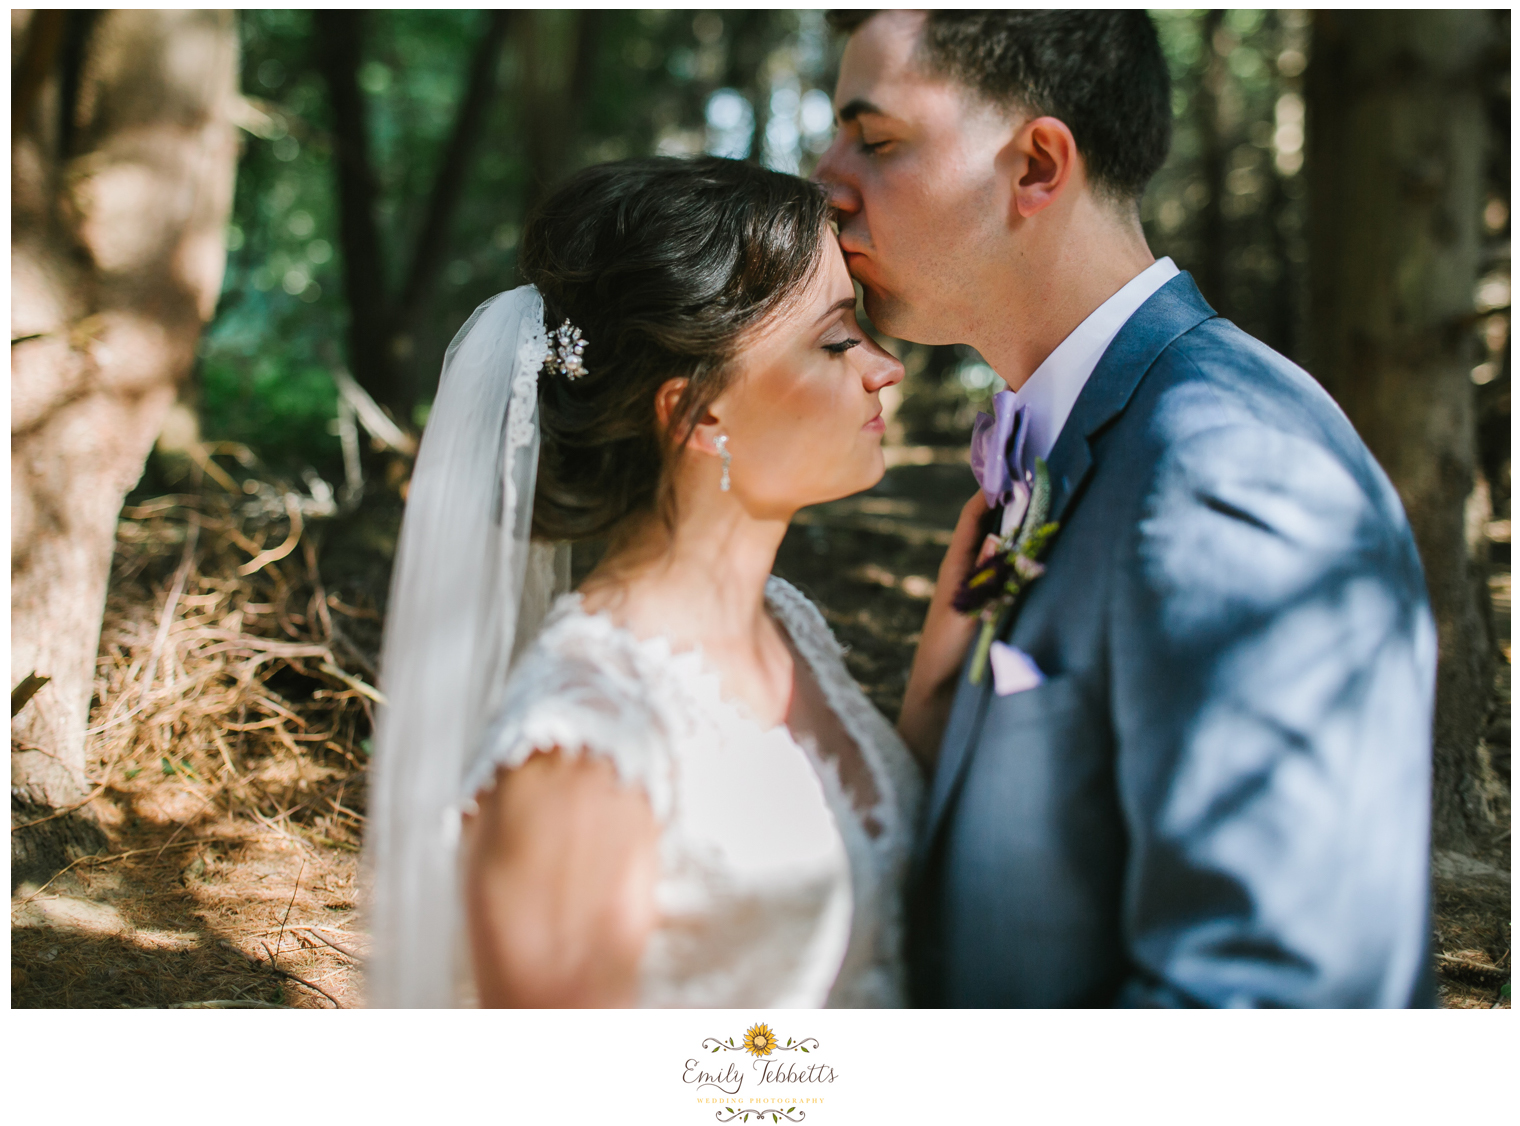 Emily Tebbetts Photography - webb barn wedding wethersfield ct connecticut rustic chic wedding first look fathers day emotional -5.jpg